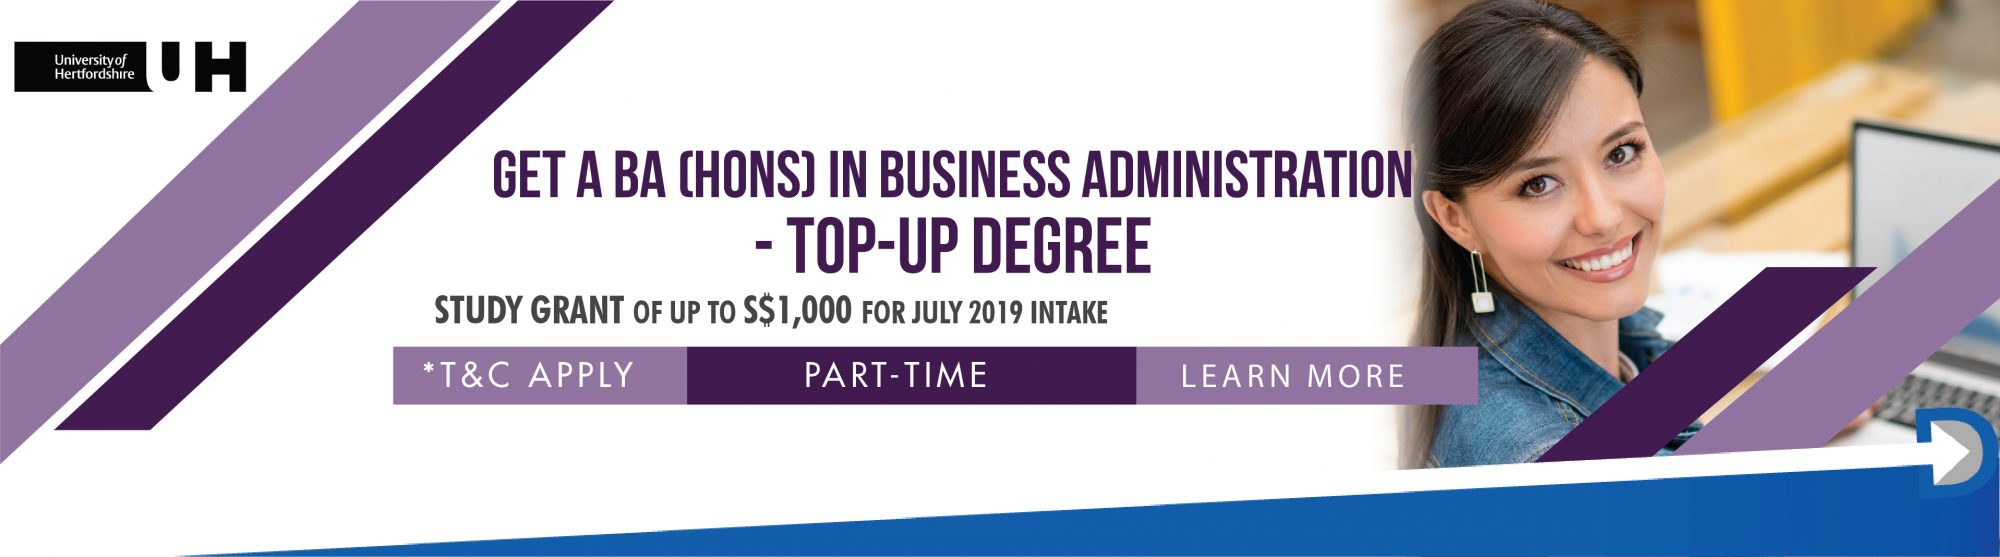 Business Administration Degree